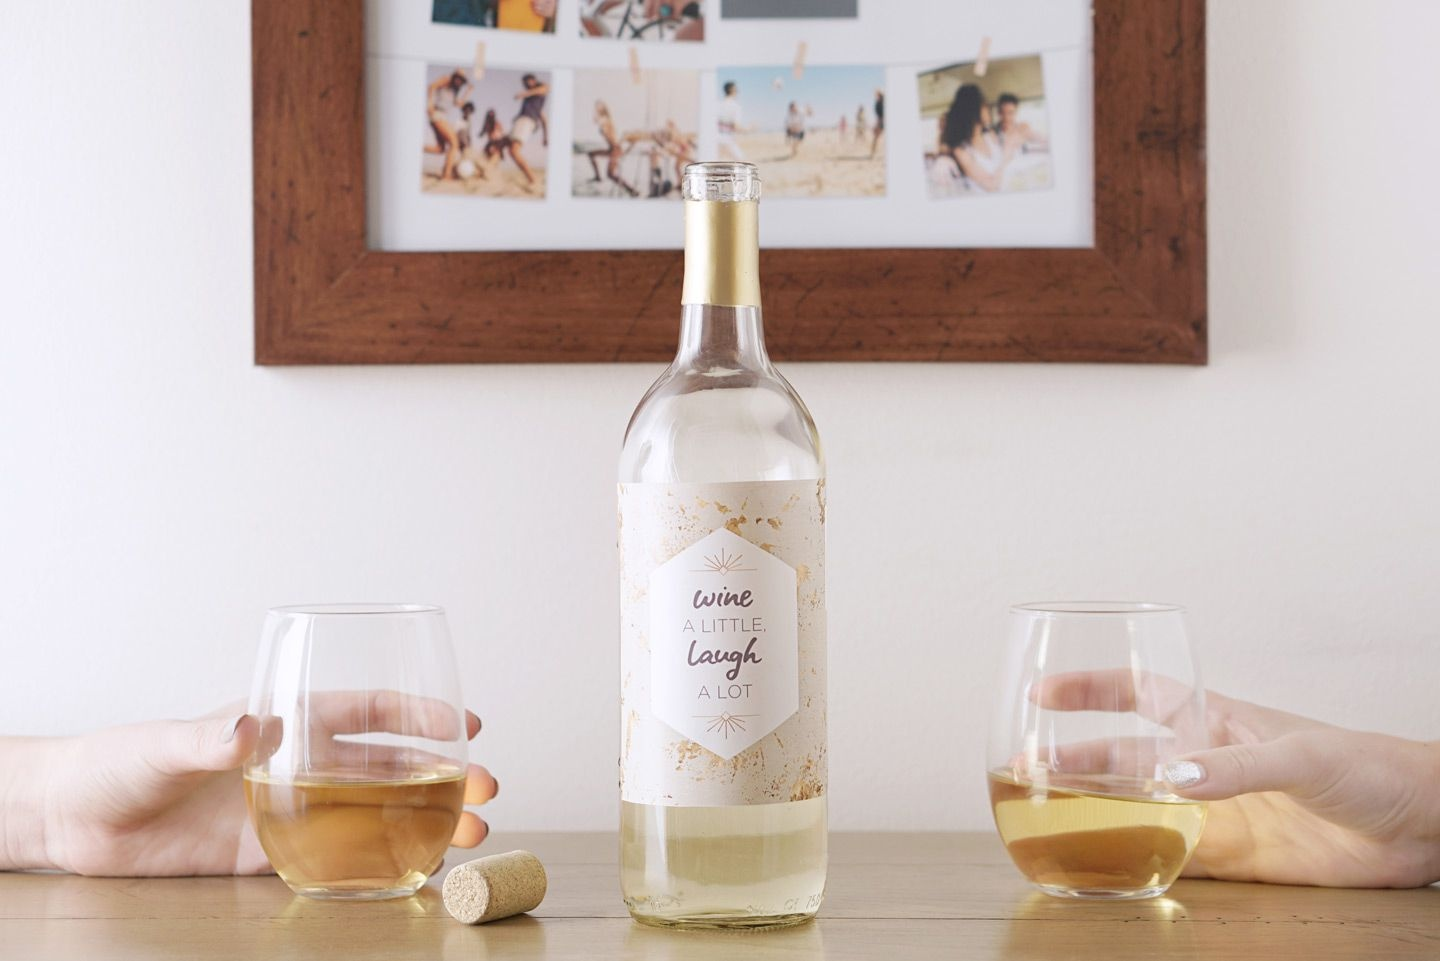 Free Wine Label Templates For Any Occassion - Free Printable Wine Labels For Birthday